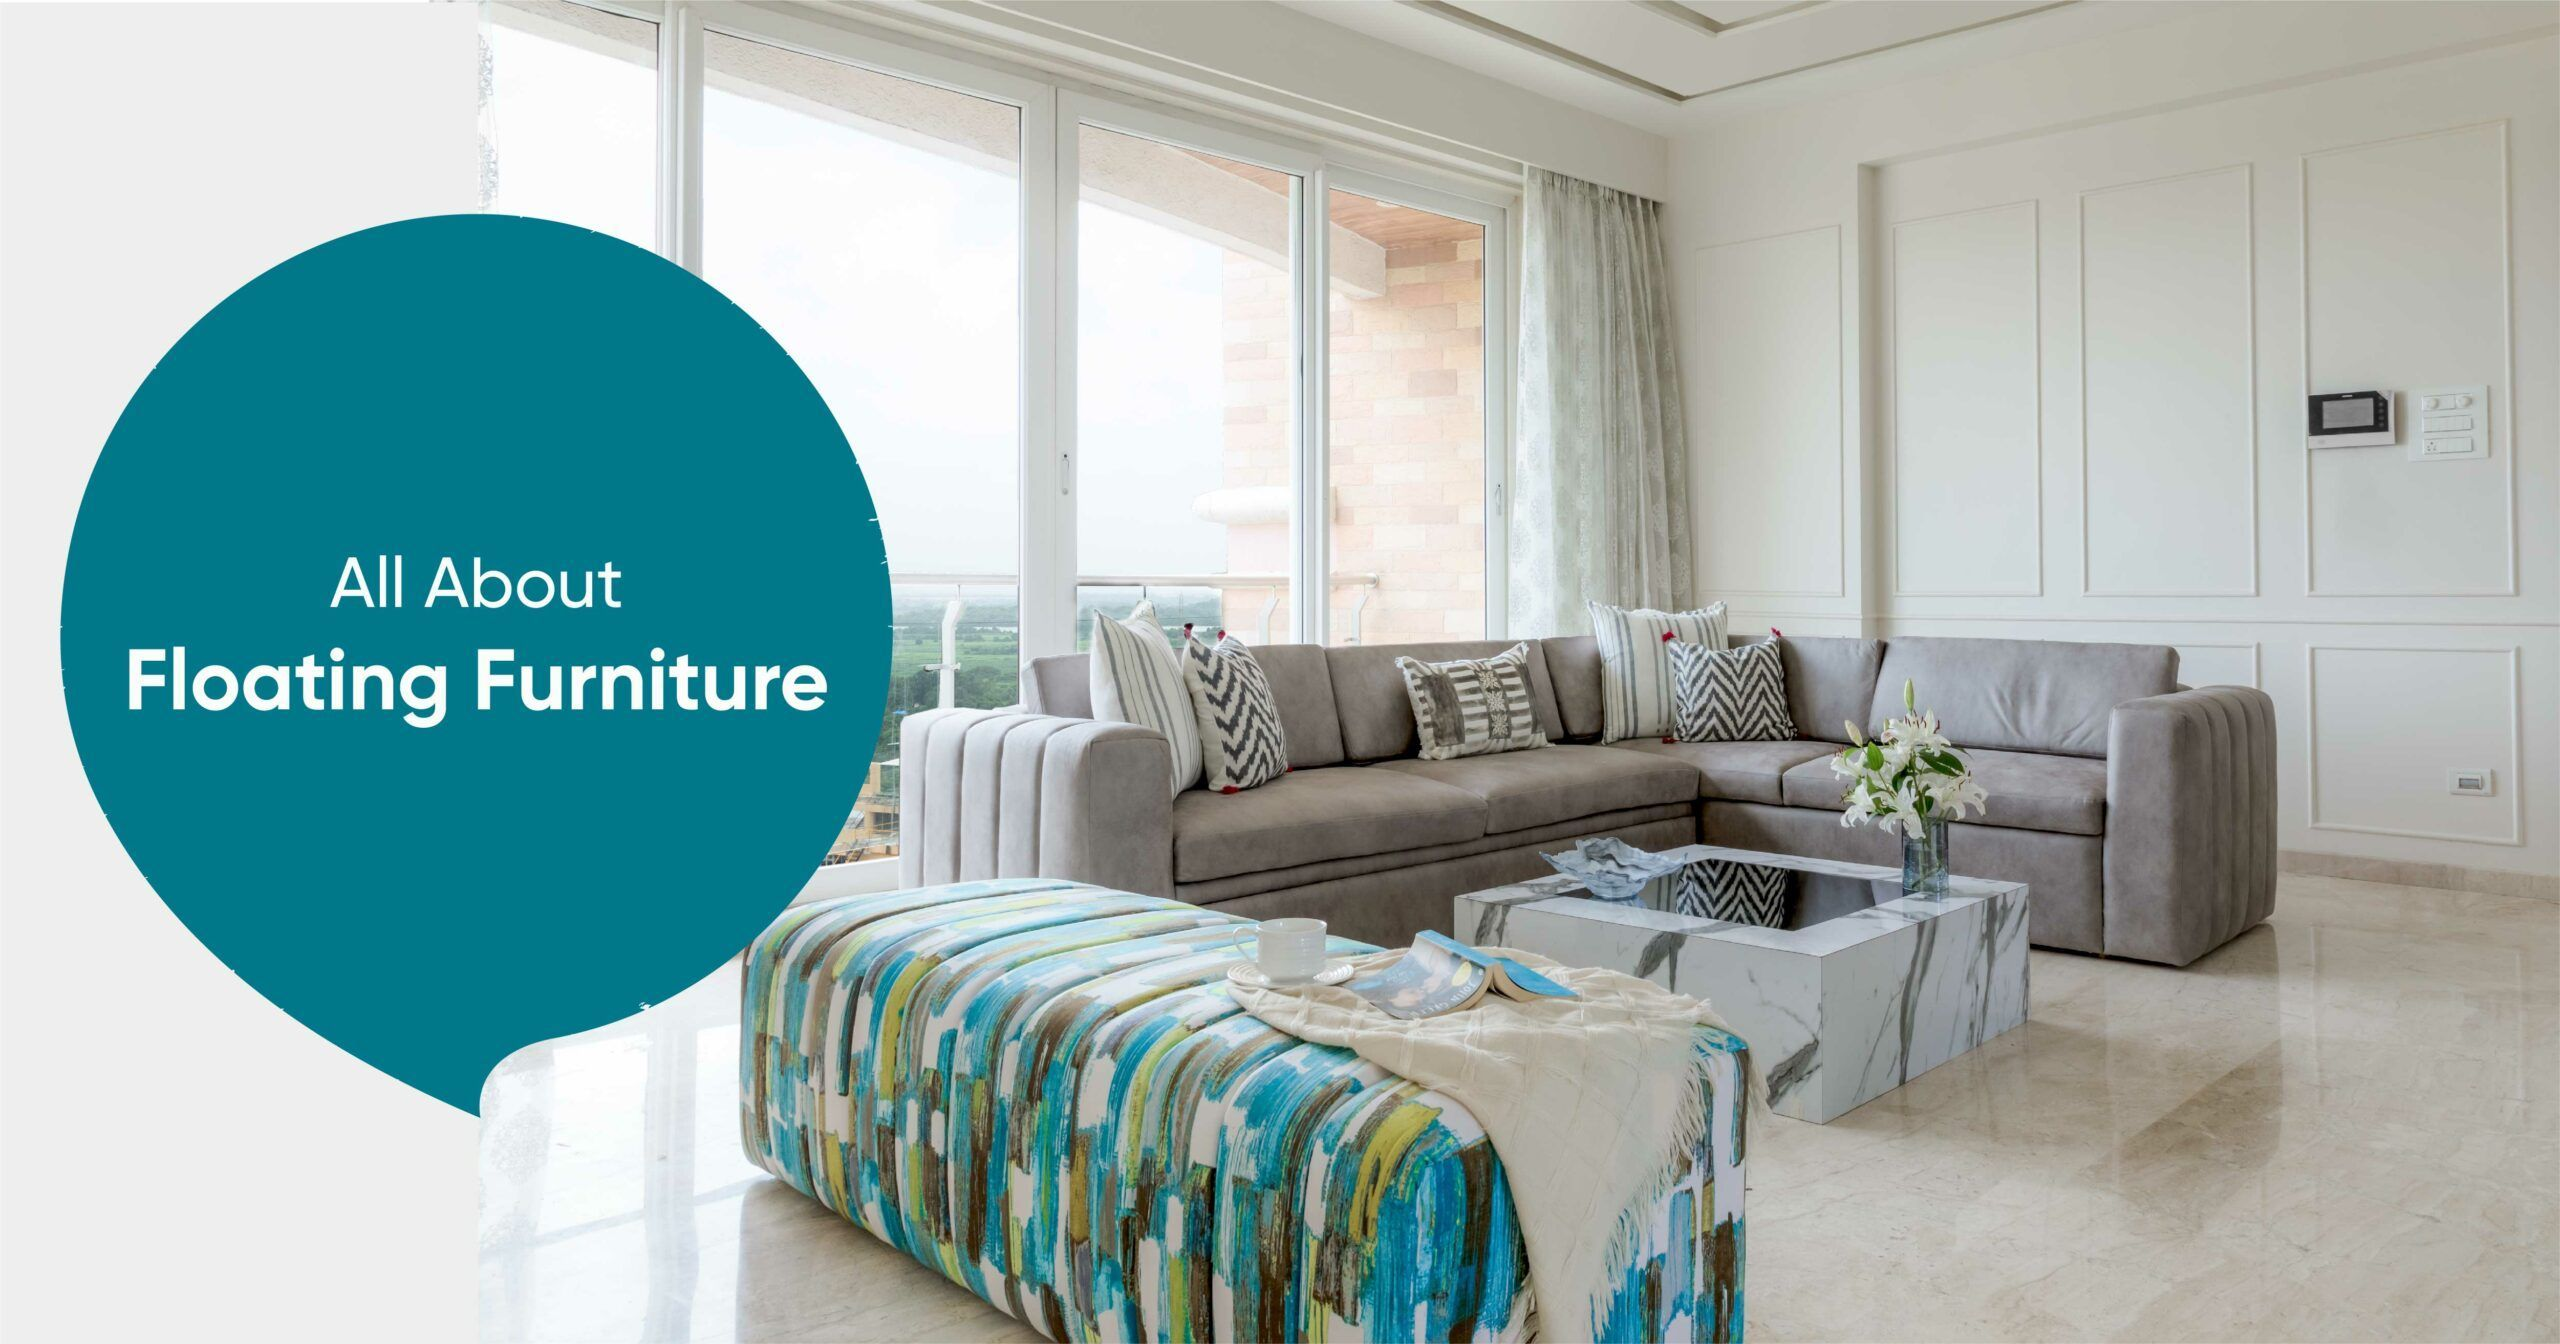 Floating the Furniture is the Smartest Decor Move for Small Spaces